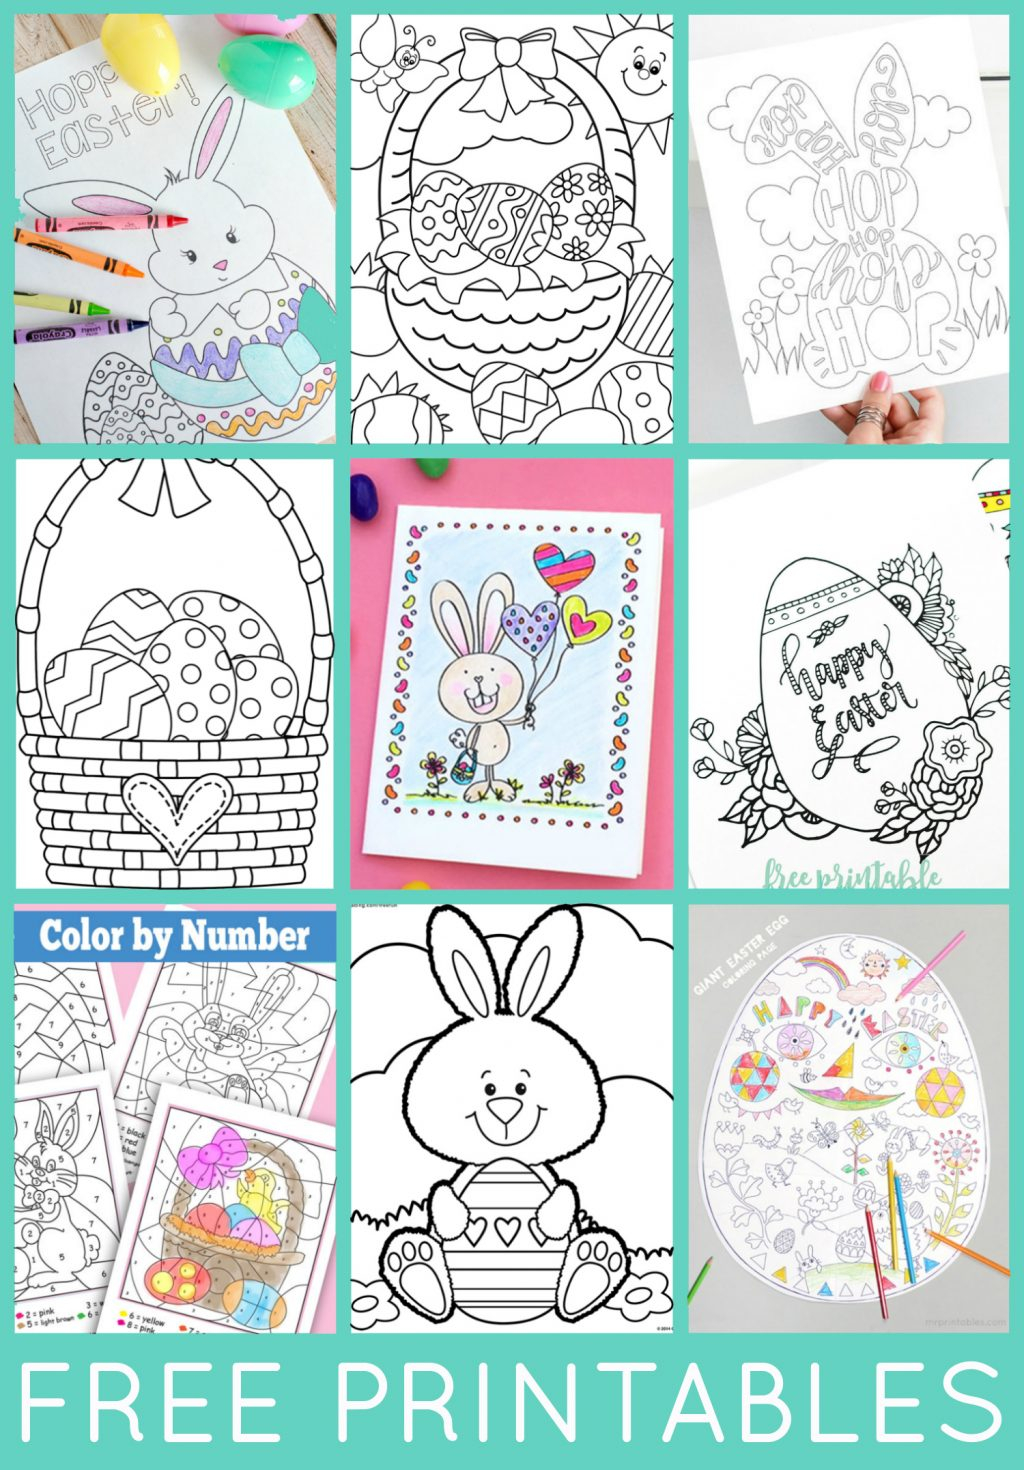 Jesus Easter Coloring Pages Printable Coloring Pages Easter Coloring Books For Toddlers Food Coloring